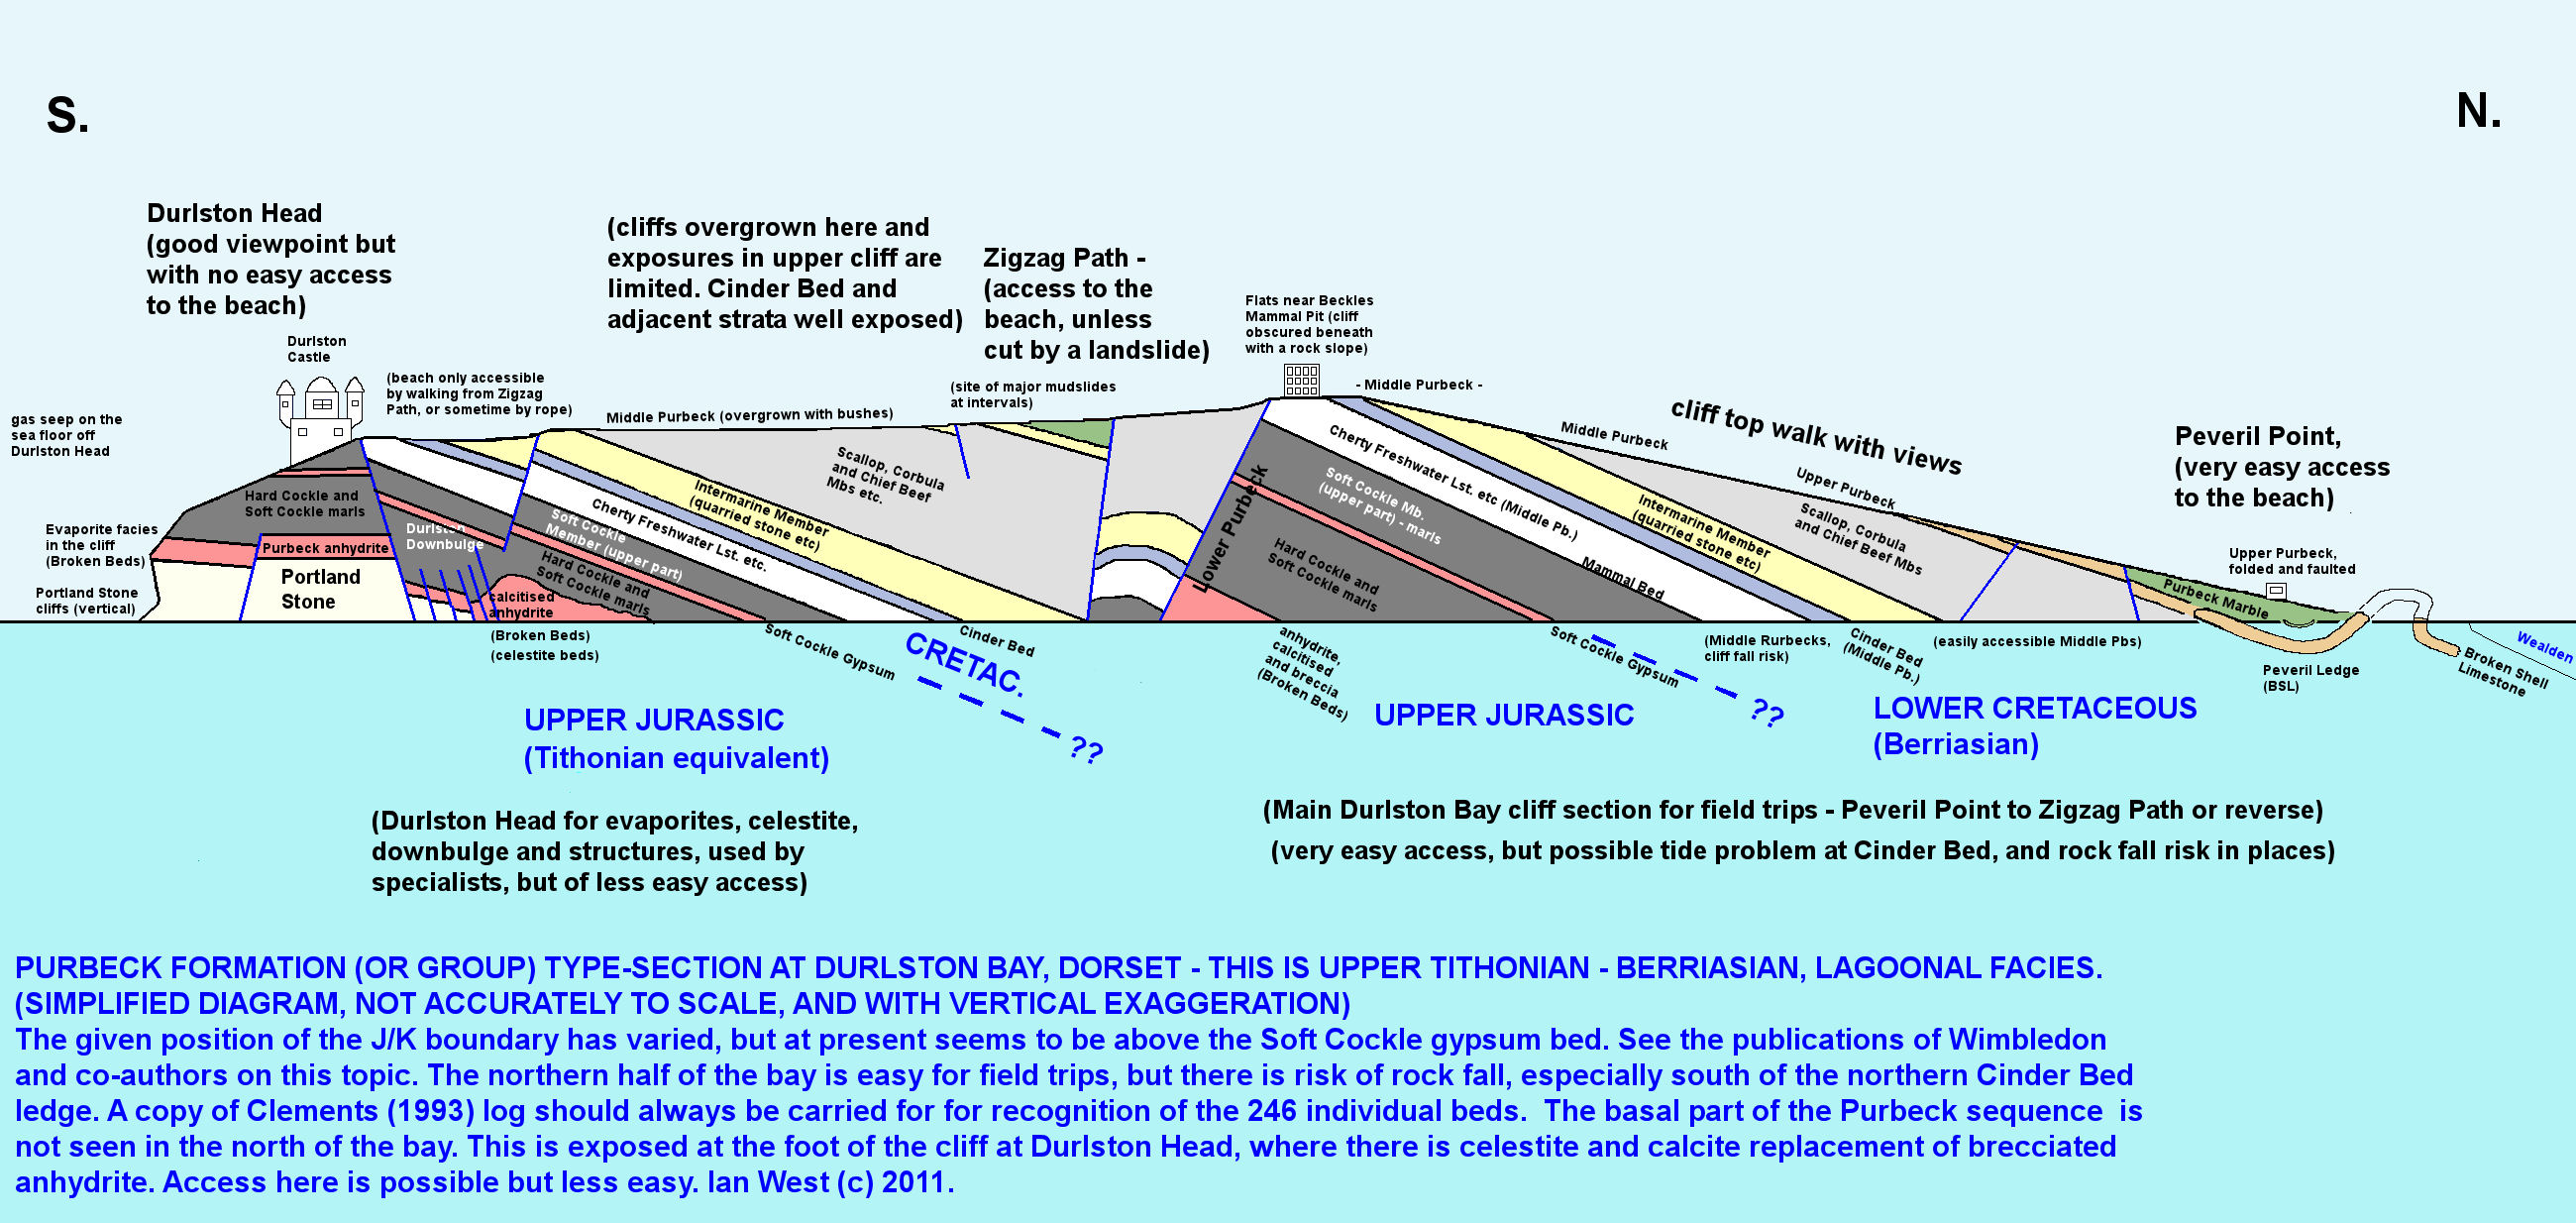 Durlston bay swanage dorset england peveril point geology a simplified cliff section of durlston bay dorsetj showing the purbeck type section pooptronica Image collections